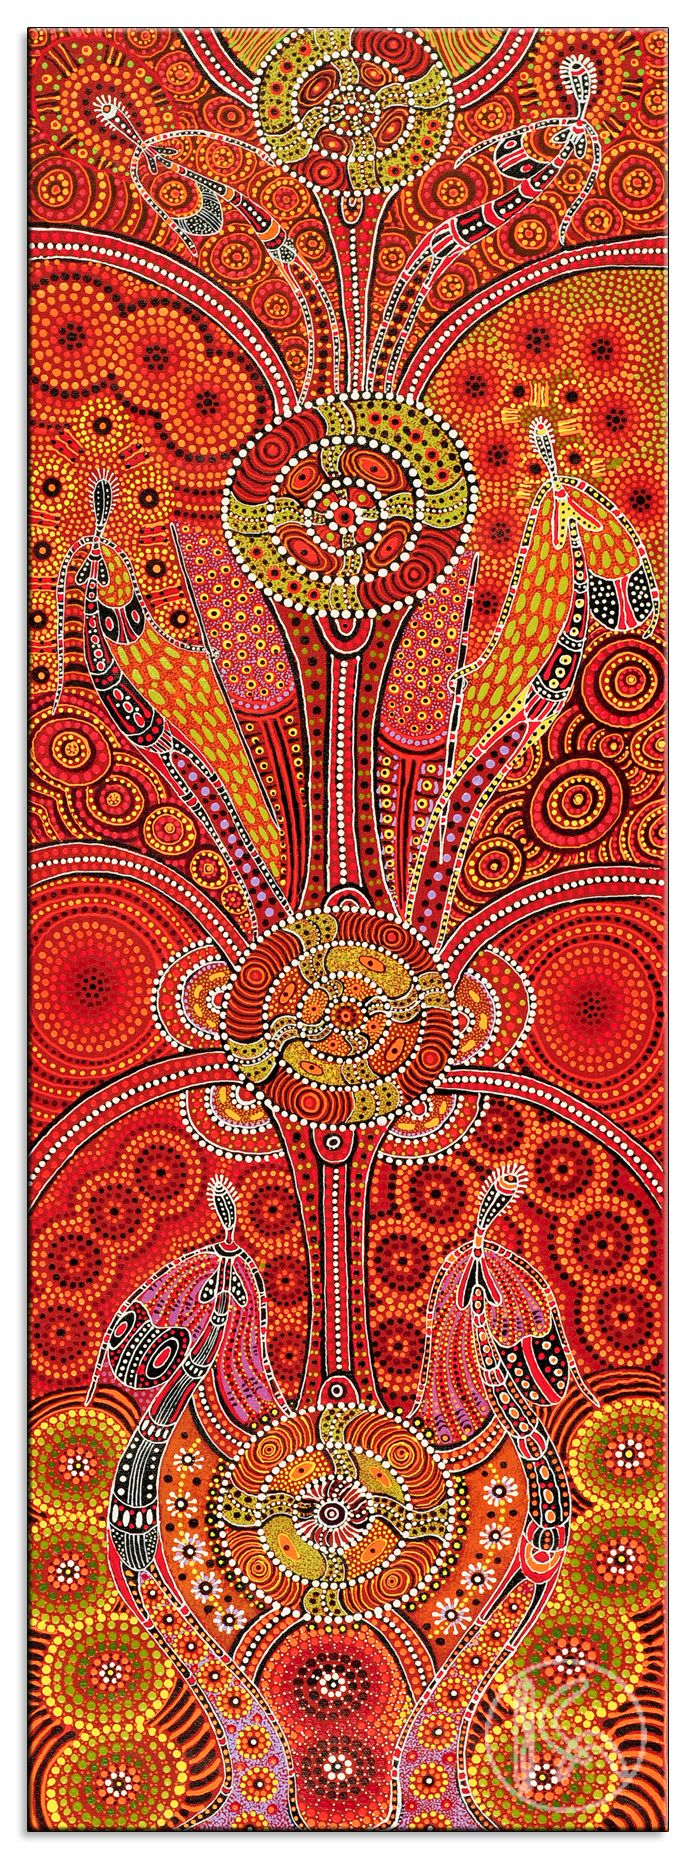 Dreamtime Ladies, Kathleen Wallace~Art is the most intense mode of individualism that the world has known. ~Oscar Wilde